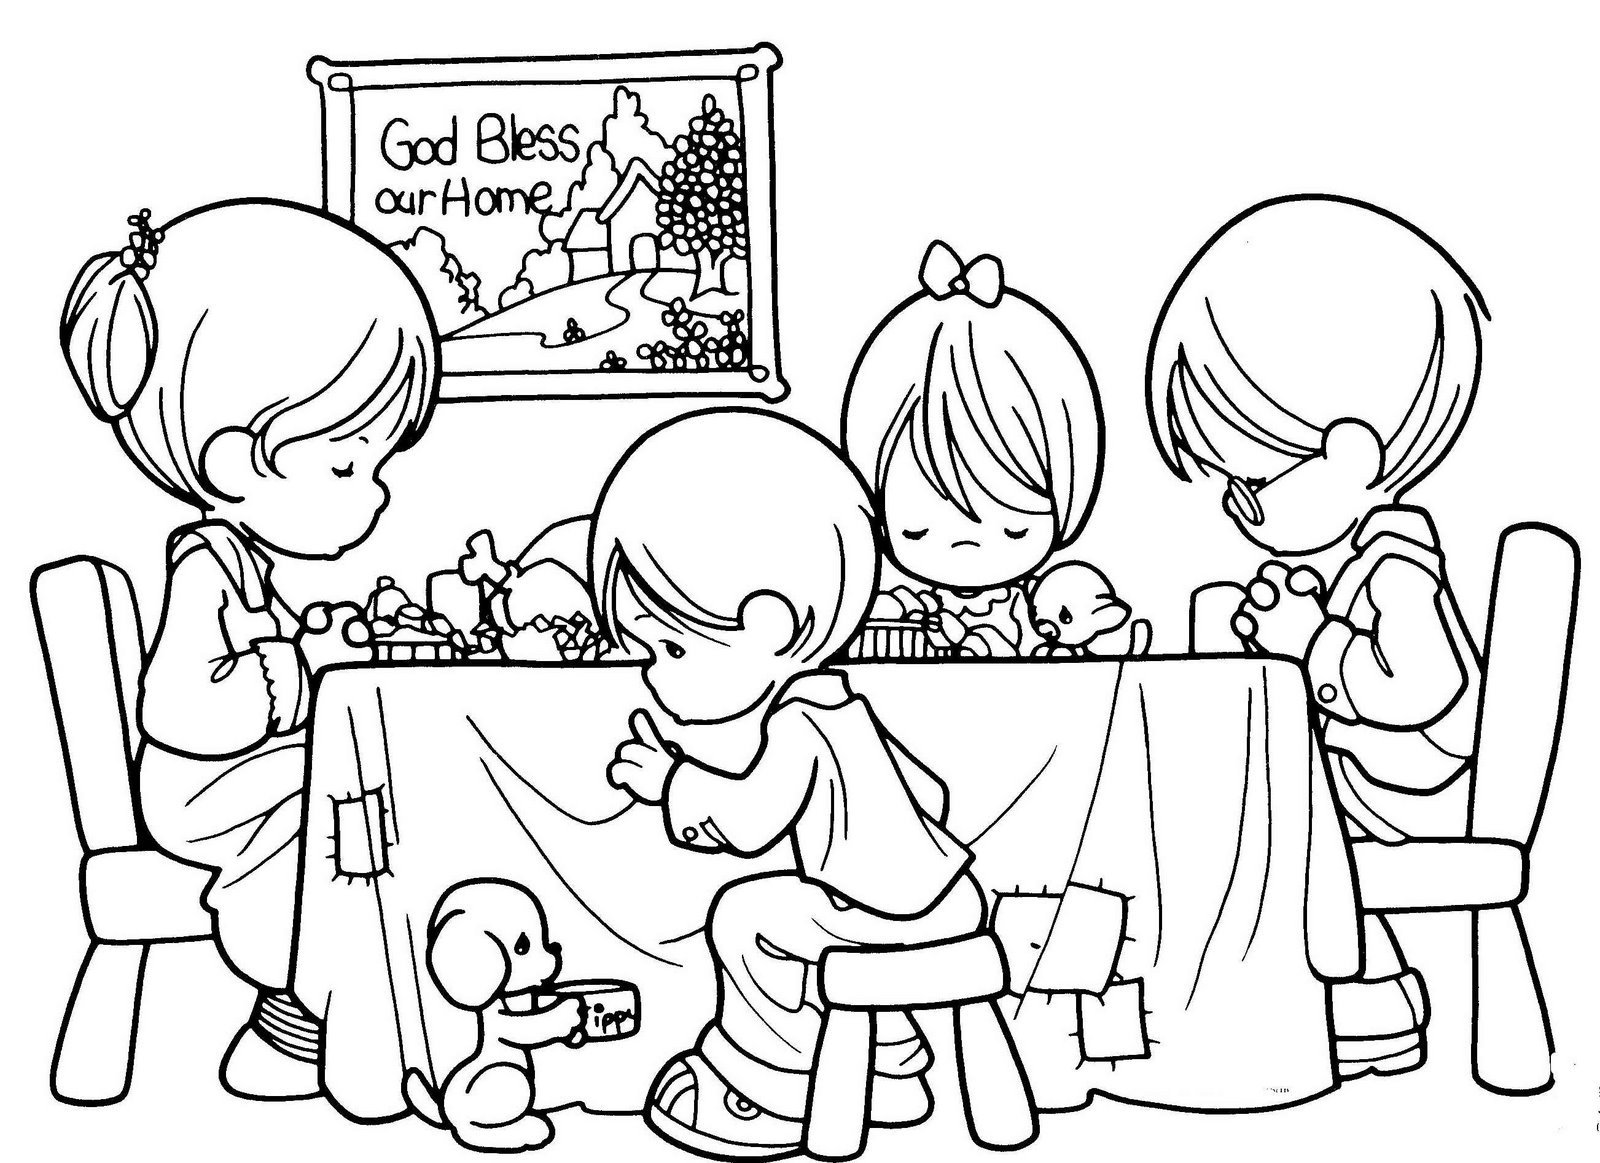 printable christian coloring pages free christian coloring pages for adults roundup printable coloring christian pages